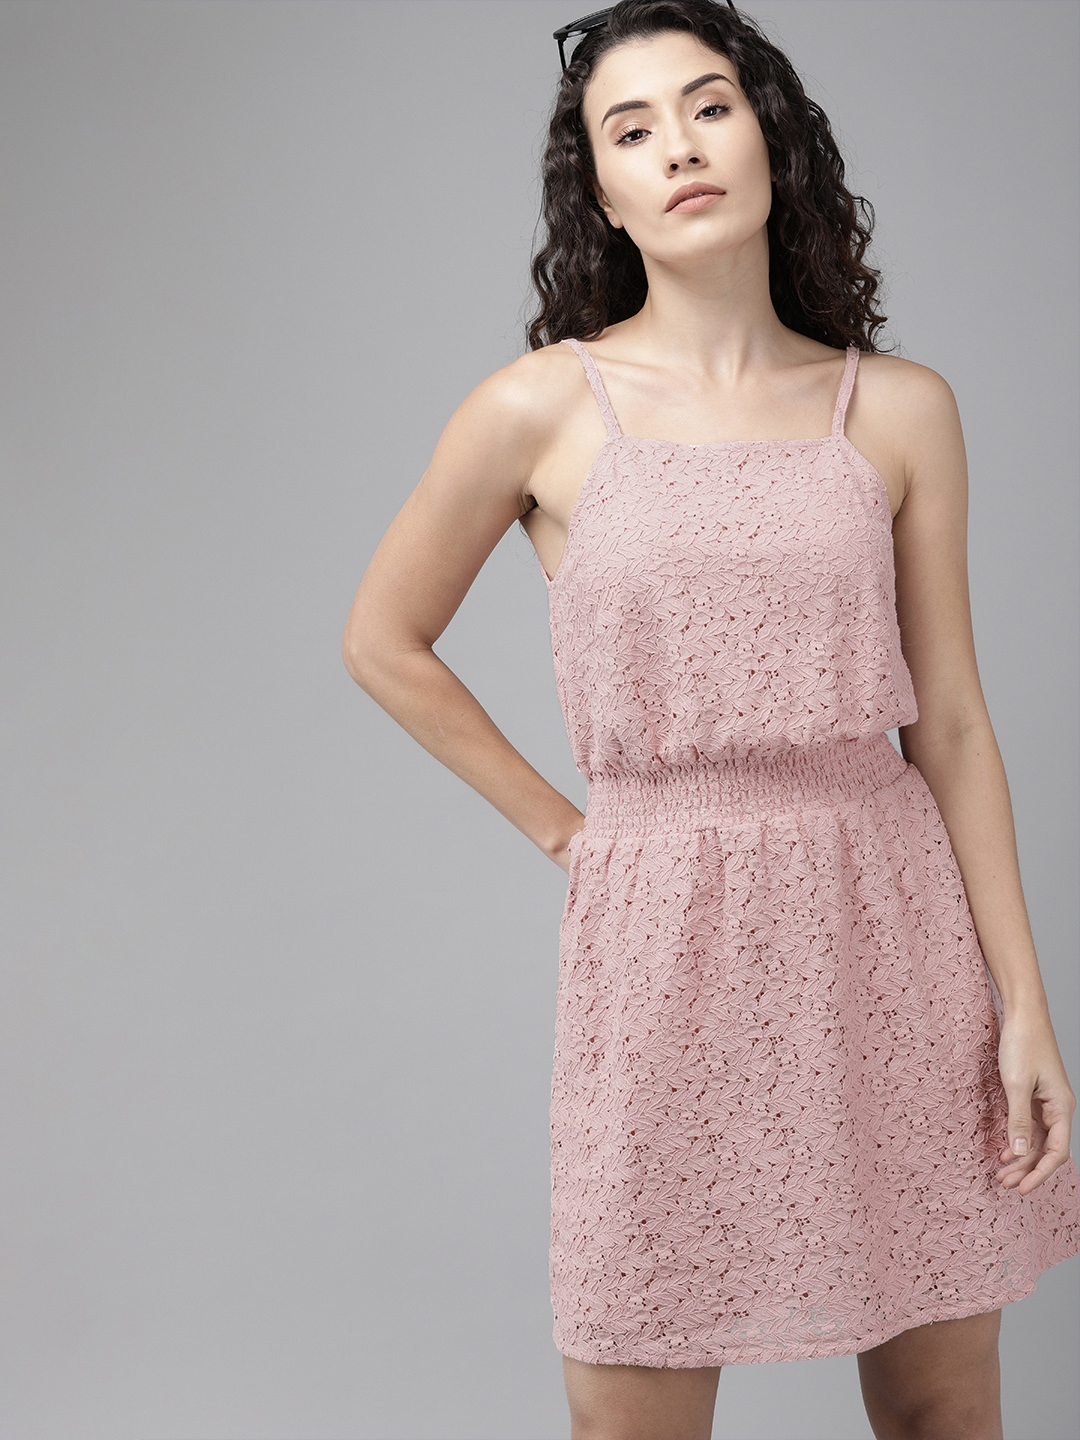 Buy Only Women Pink Lace Fit And Flare Dress Dresses For Women 11382592 Myntra 3 best fitted dress hack styling tutorials: only women pink lace fit and flare dress